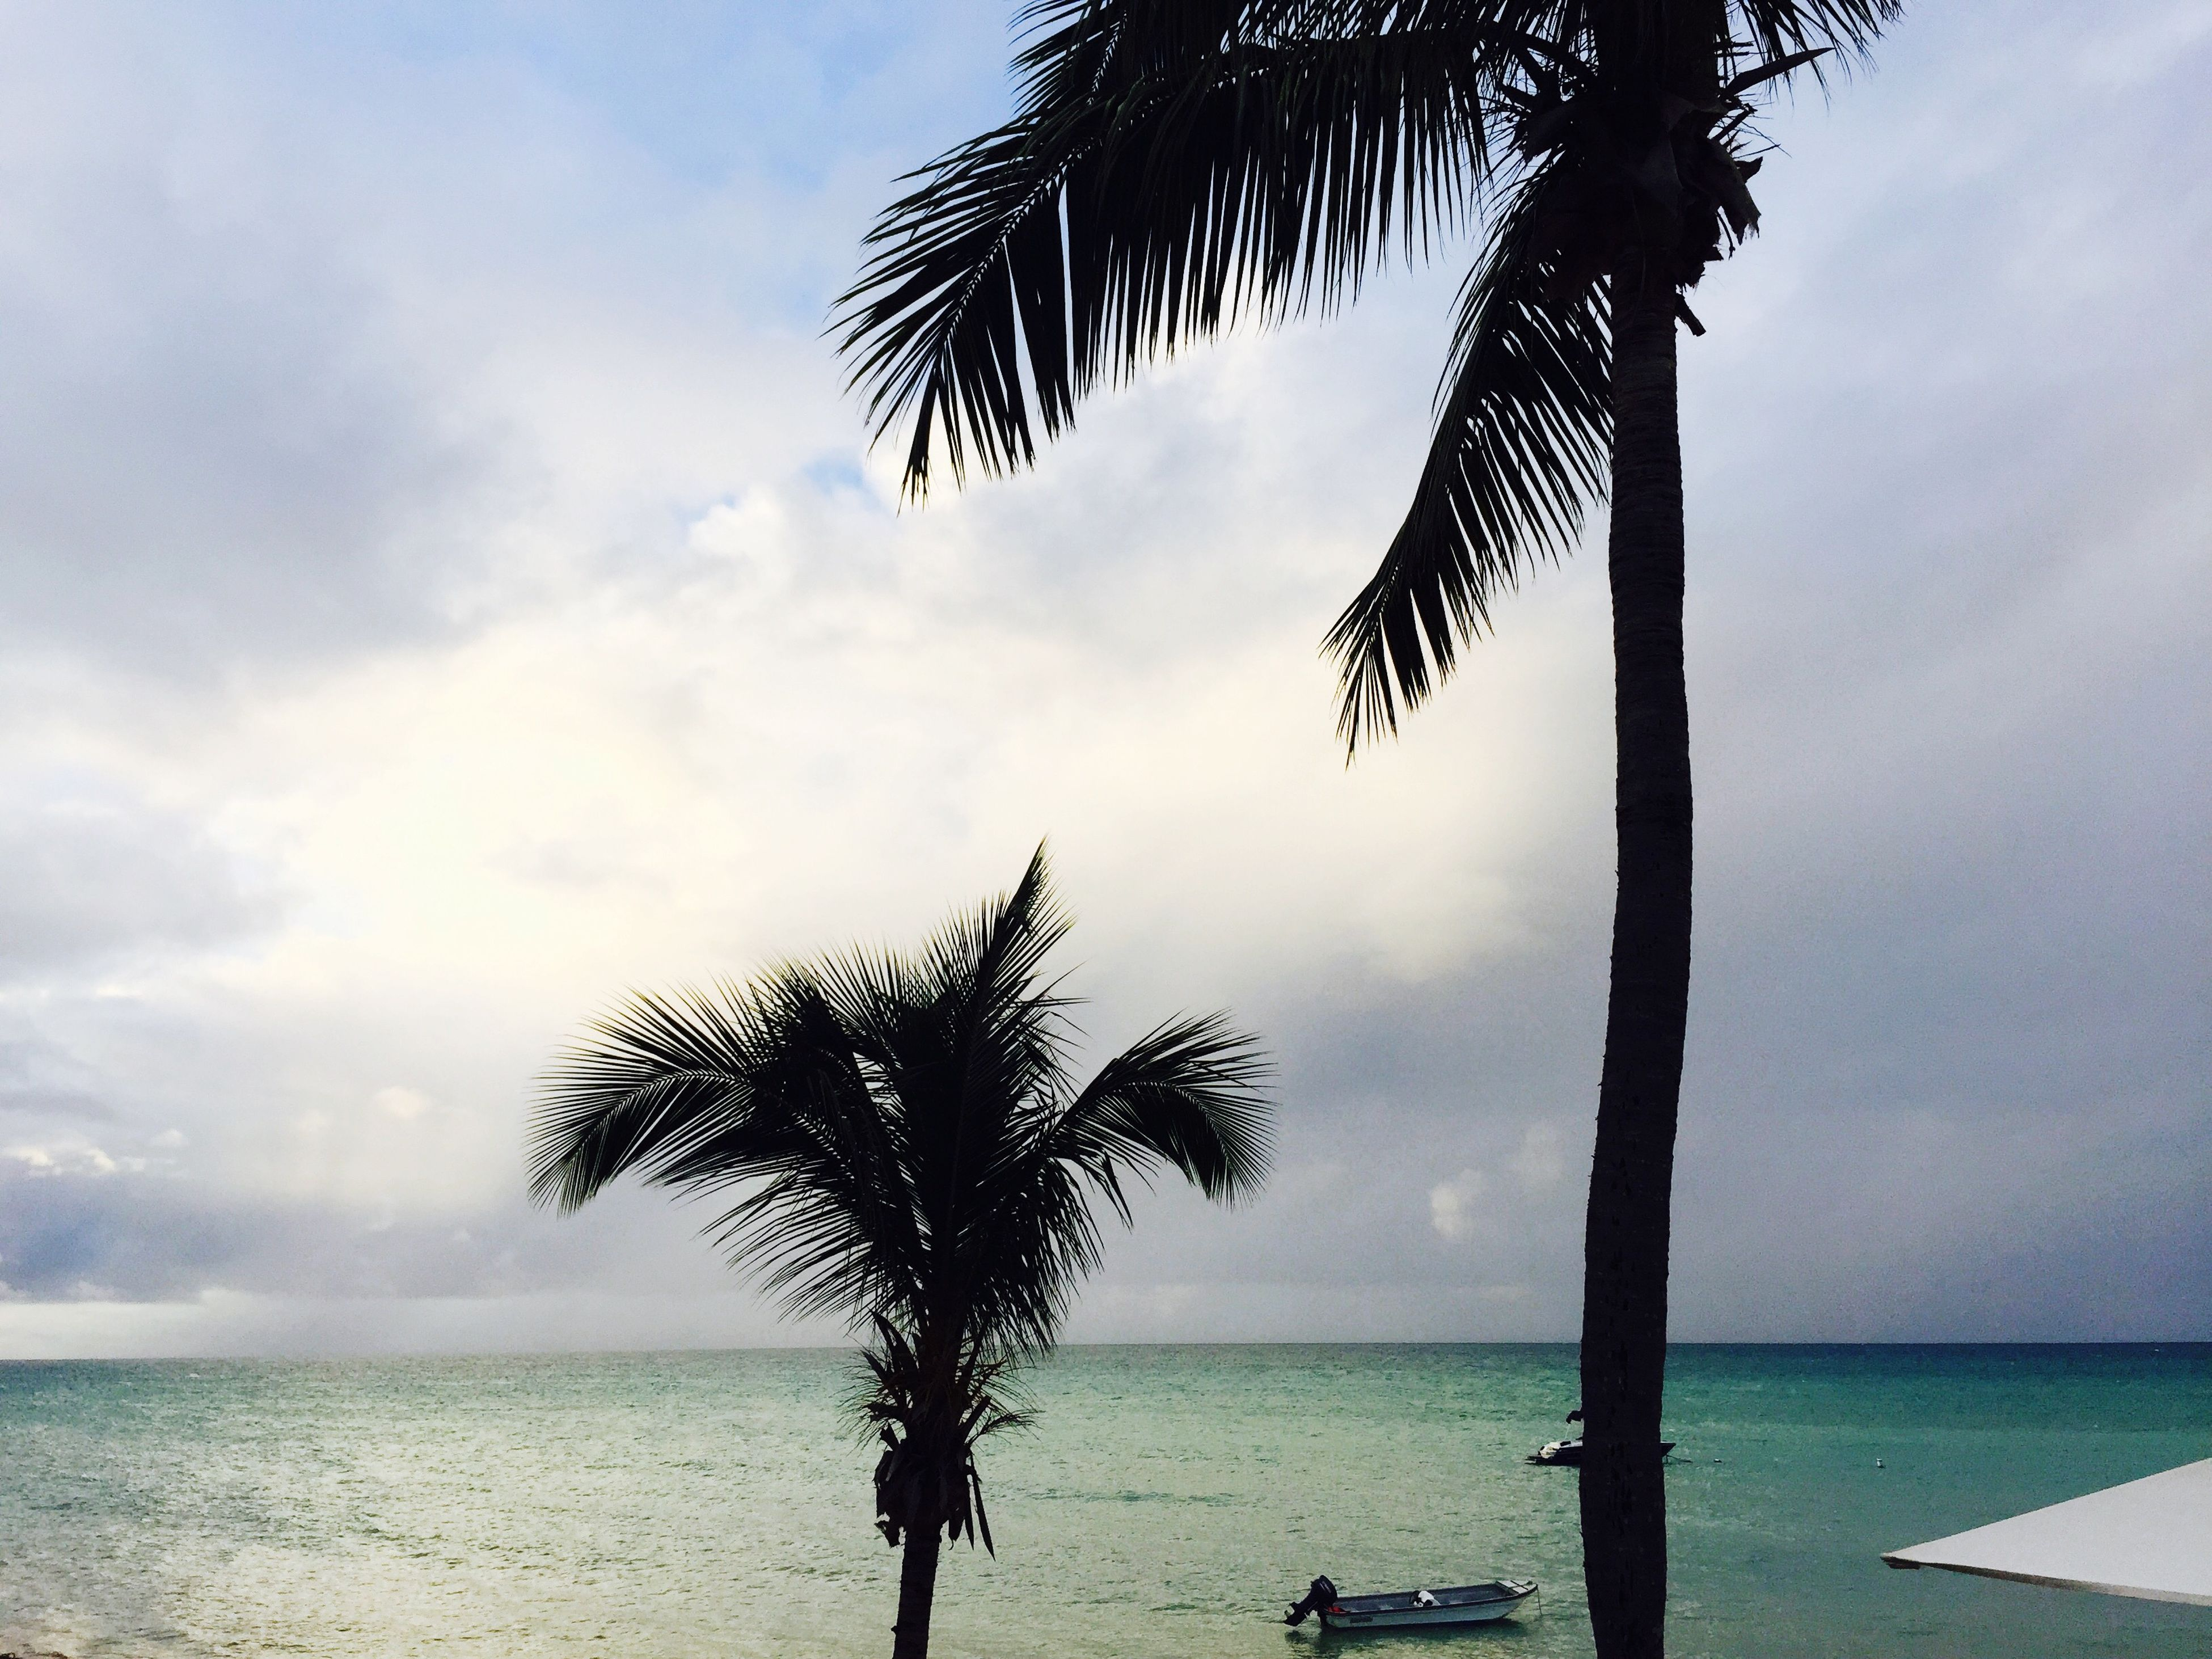 sea, horizon over water, sky, palm tree, water, beach, tranquility, tree, tree trunk, tranquil scene, scenics, shore, beauty in nature, cloud - sky, nature, cloud, silhouette, idyllic, branch, cloudy